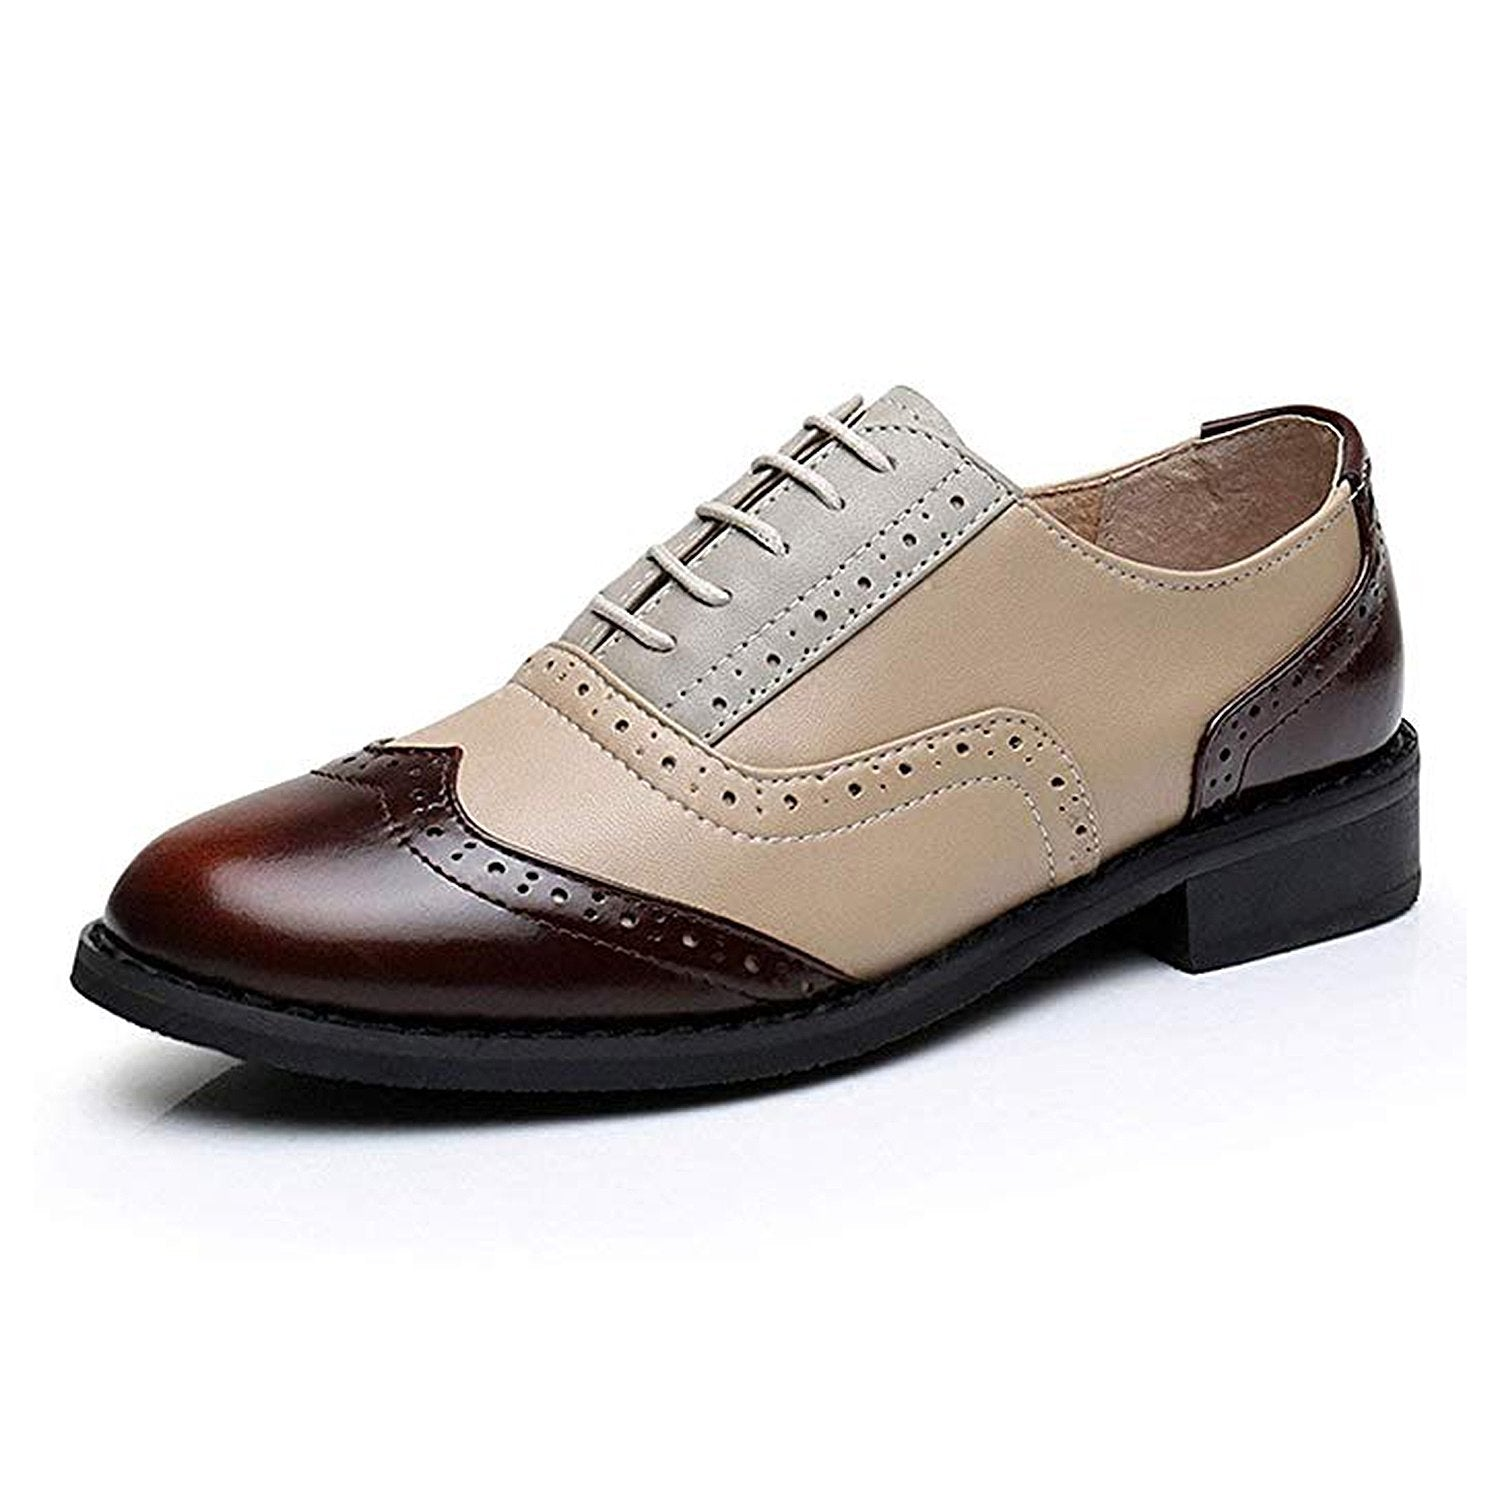 Classical Leather Wing-up Brogues Flat Lace-up Oxford Shoes